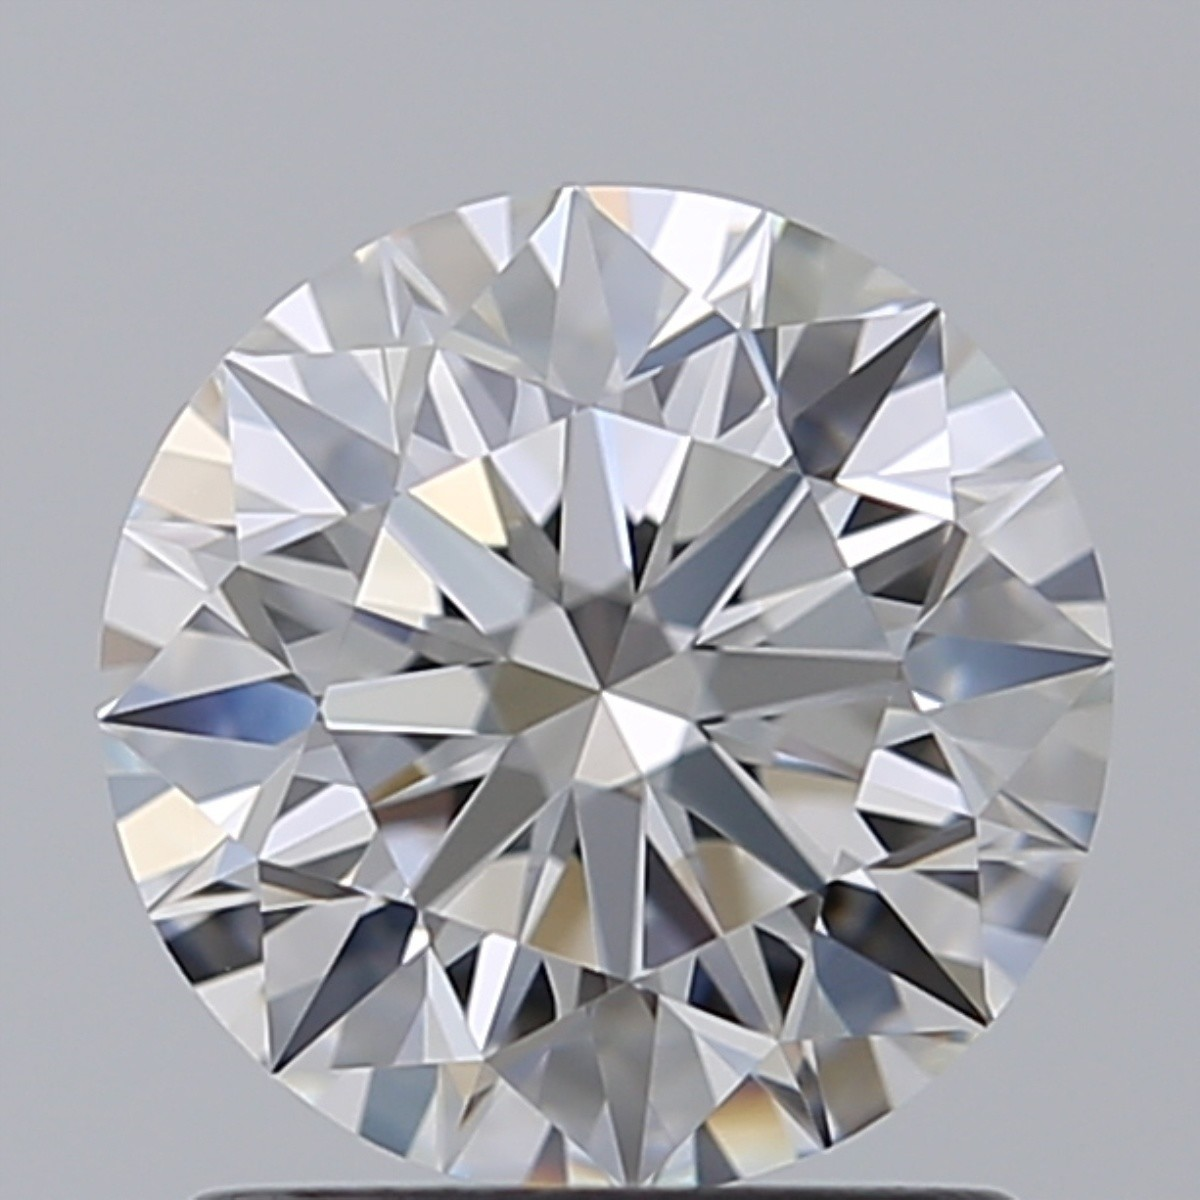 1.29 Carat Round Brilliant Diamond (E/VVS1)